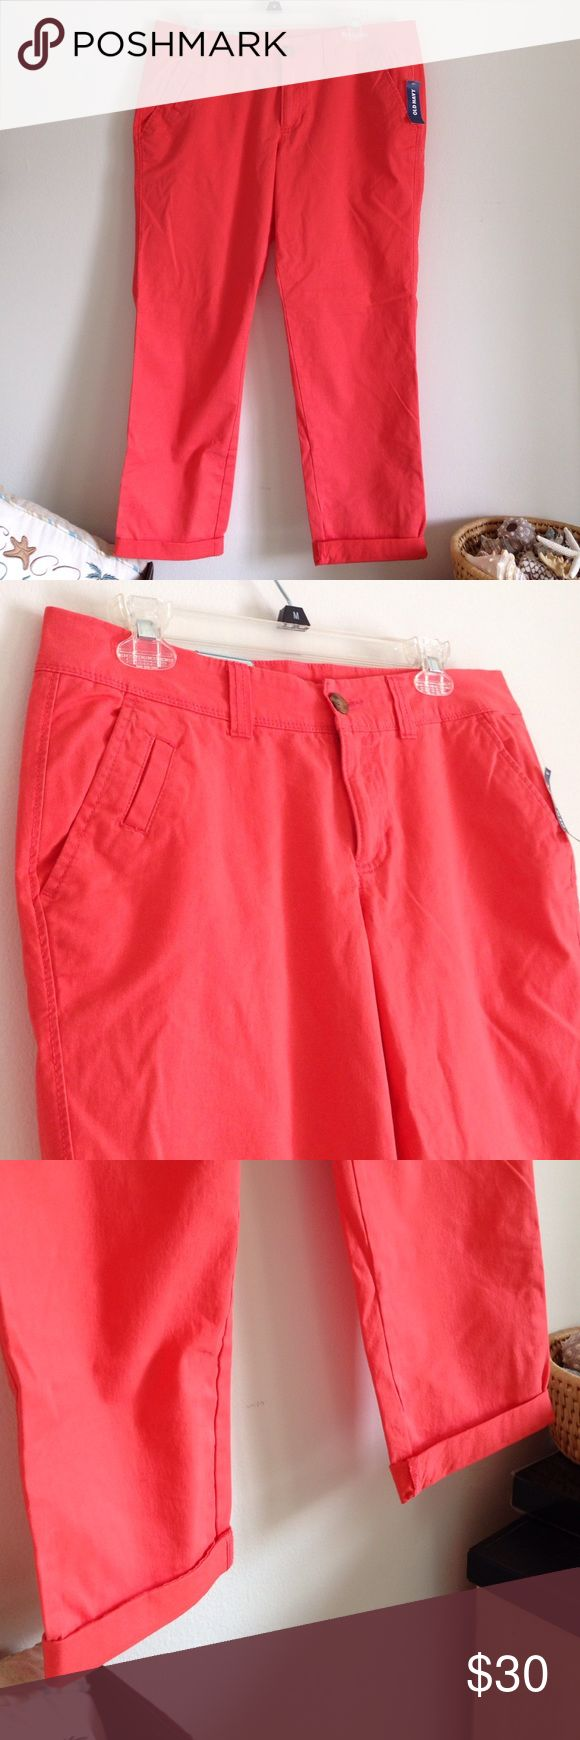 """🚨MOVING SALE🚨 Coral Capri Pant It's beautiful color coral. Pockets. Fold at end of Capri. Brand new with tag. 97% cotton and 3% spandex. Stretch. Boyfriend skinny, low rise, relaxed skinny legs. Measurement laying flat: waist: 17.5"""" length: 33"""" inseam: 25"""" (24) Old Navy Pants Capris"""